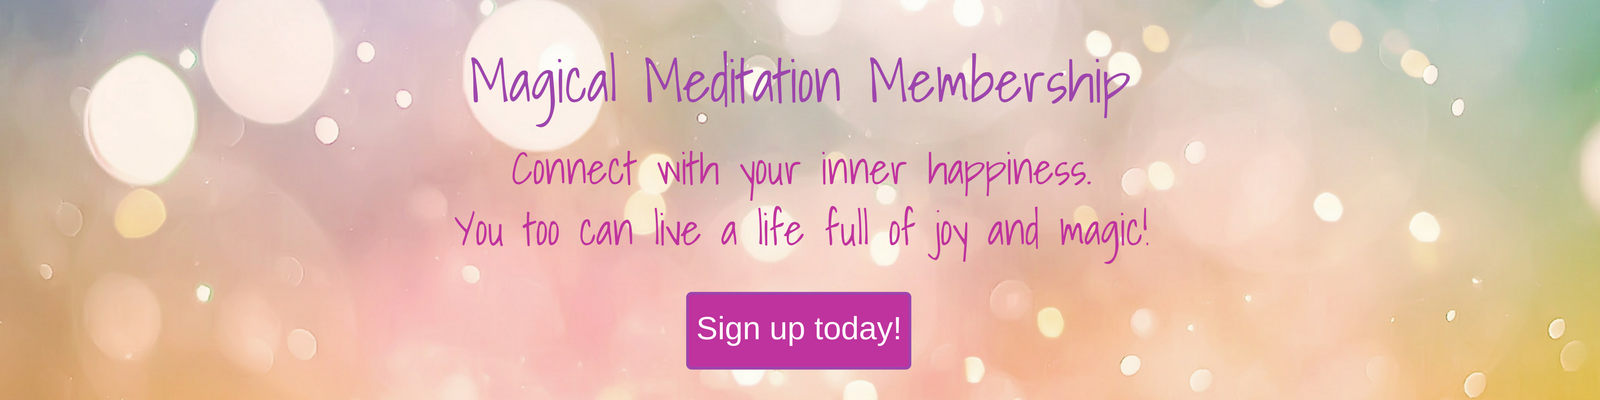 Magical Meditations Membership